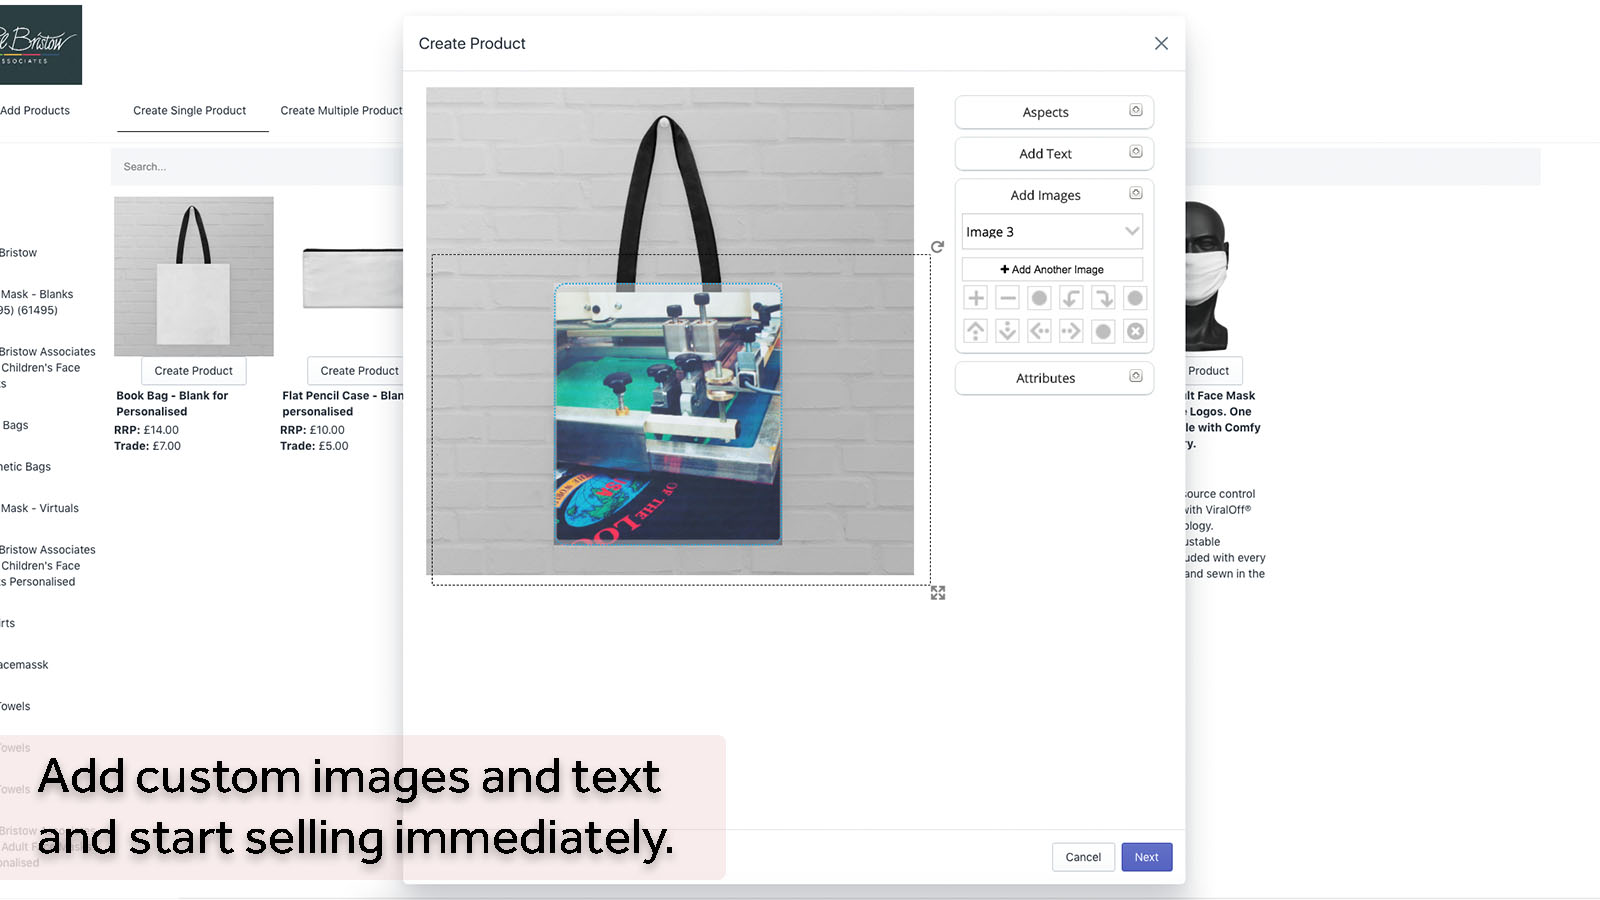 Add custom images and text and start selling immediately.